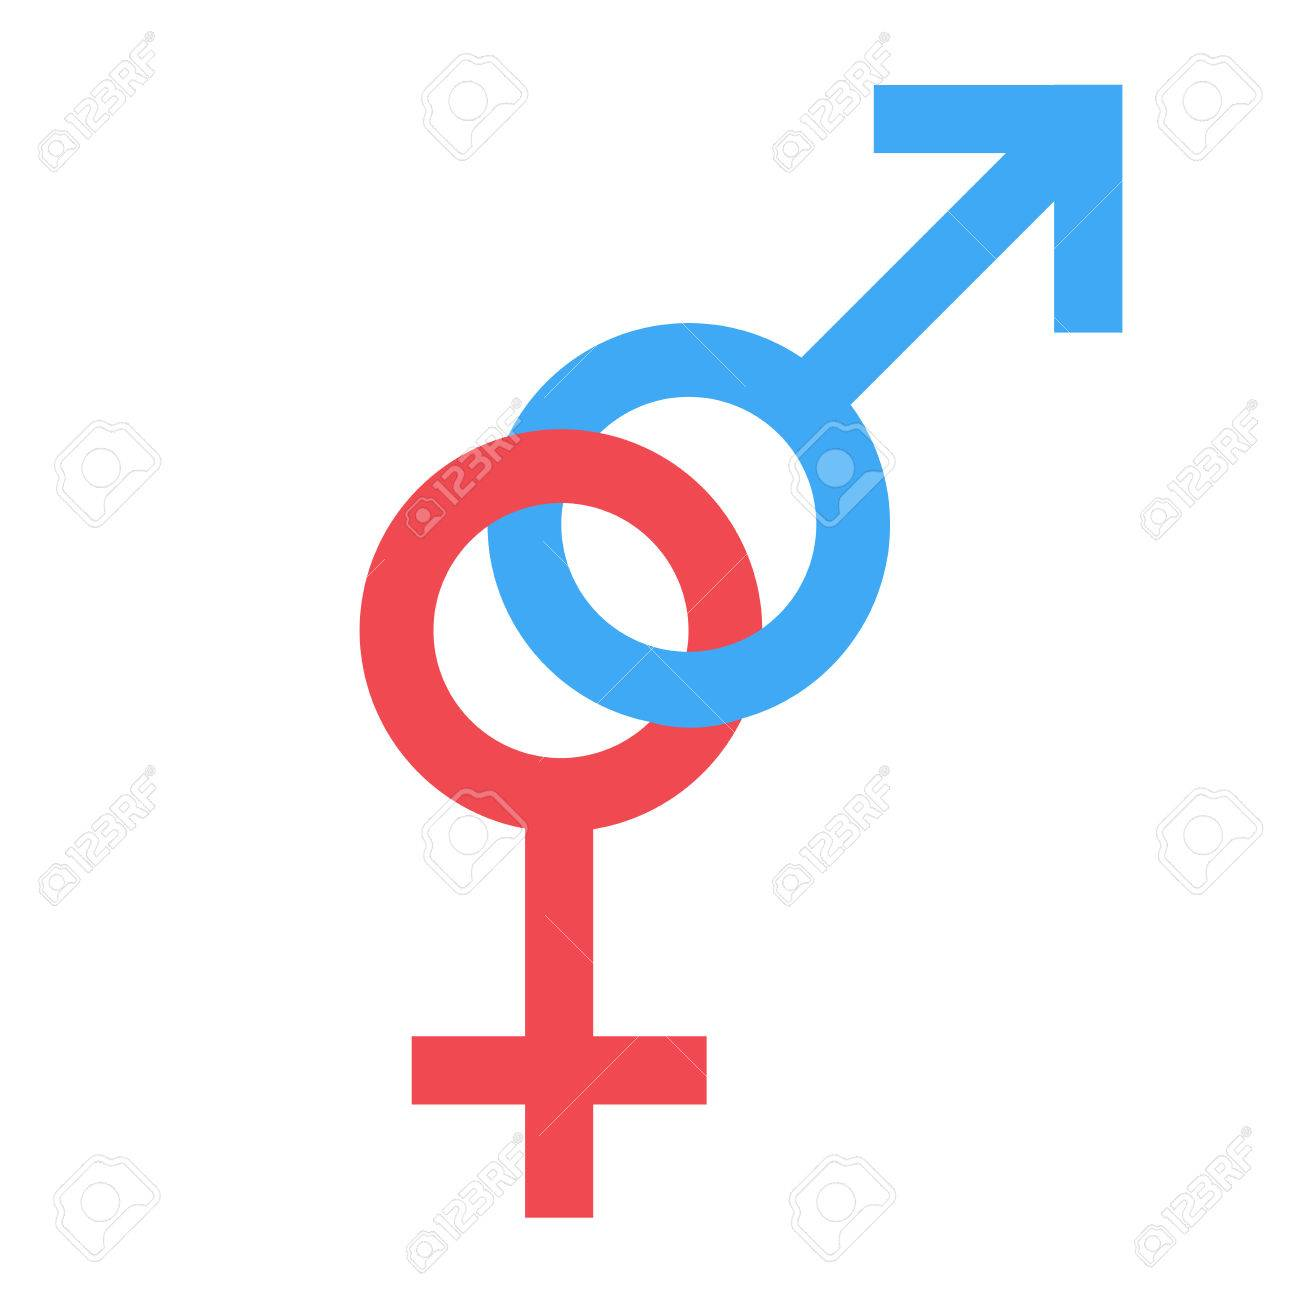 Sex Symbol Gender Man And Woman Connected Symbol Male And Female